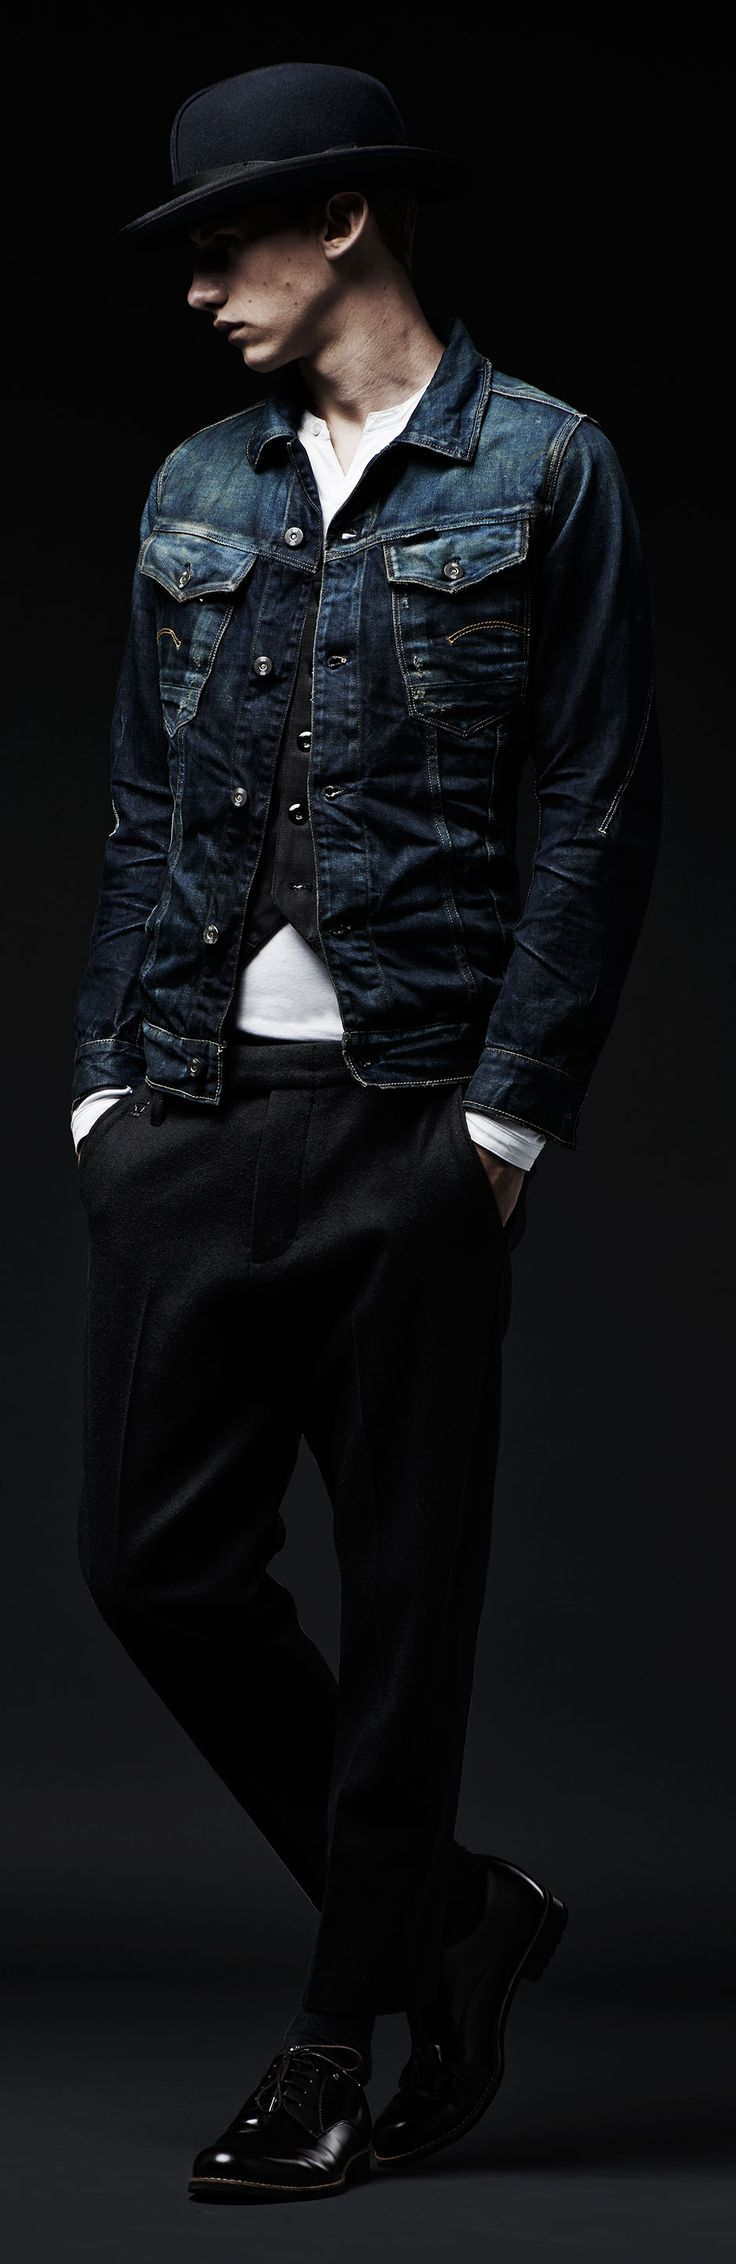 The next time your invited for last minute drinks, go for classic menswear styling with denim details fit for a banquet